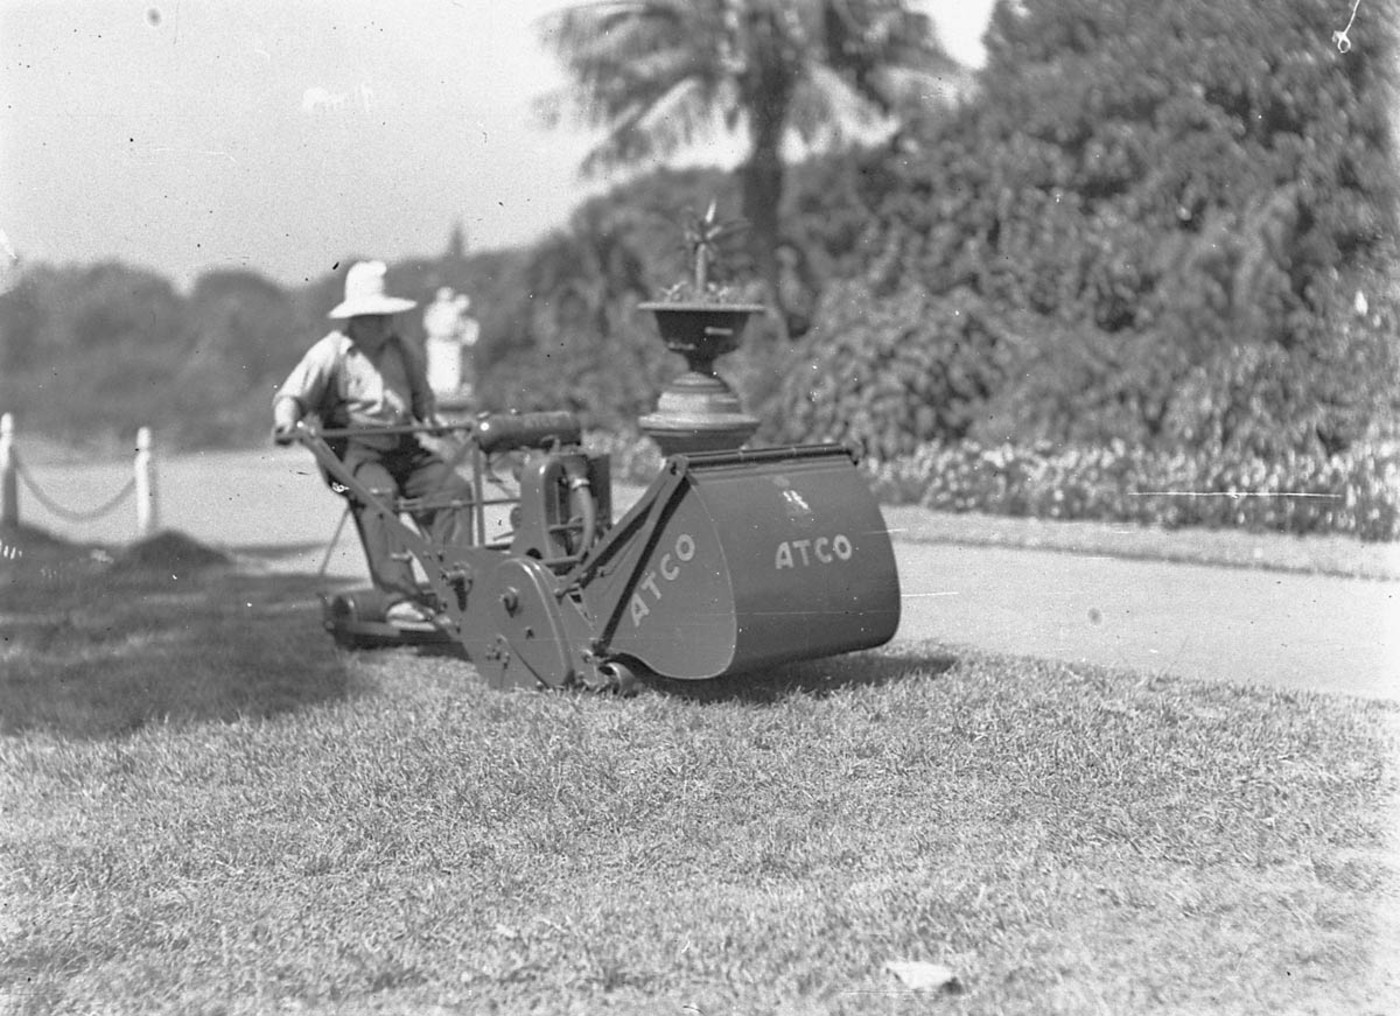 Gardener on Atco ride-on lawn mower, c. 1932, by Ted Hood